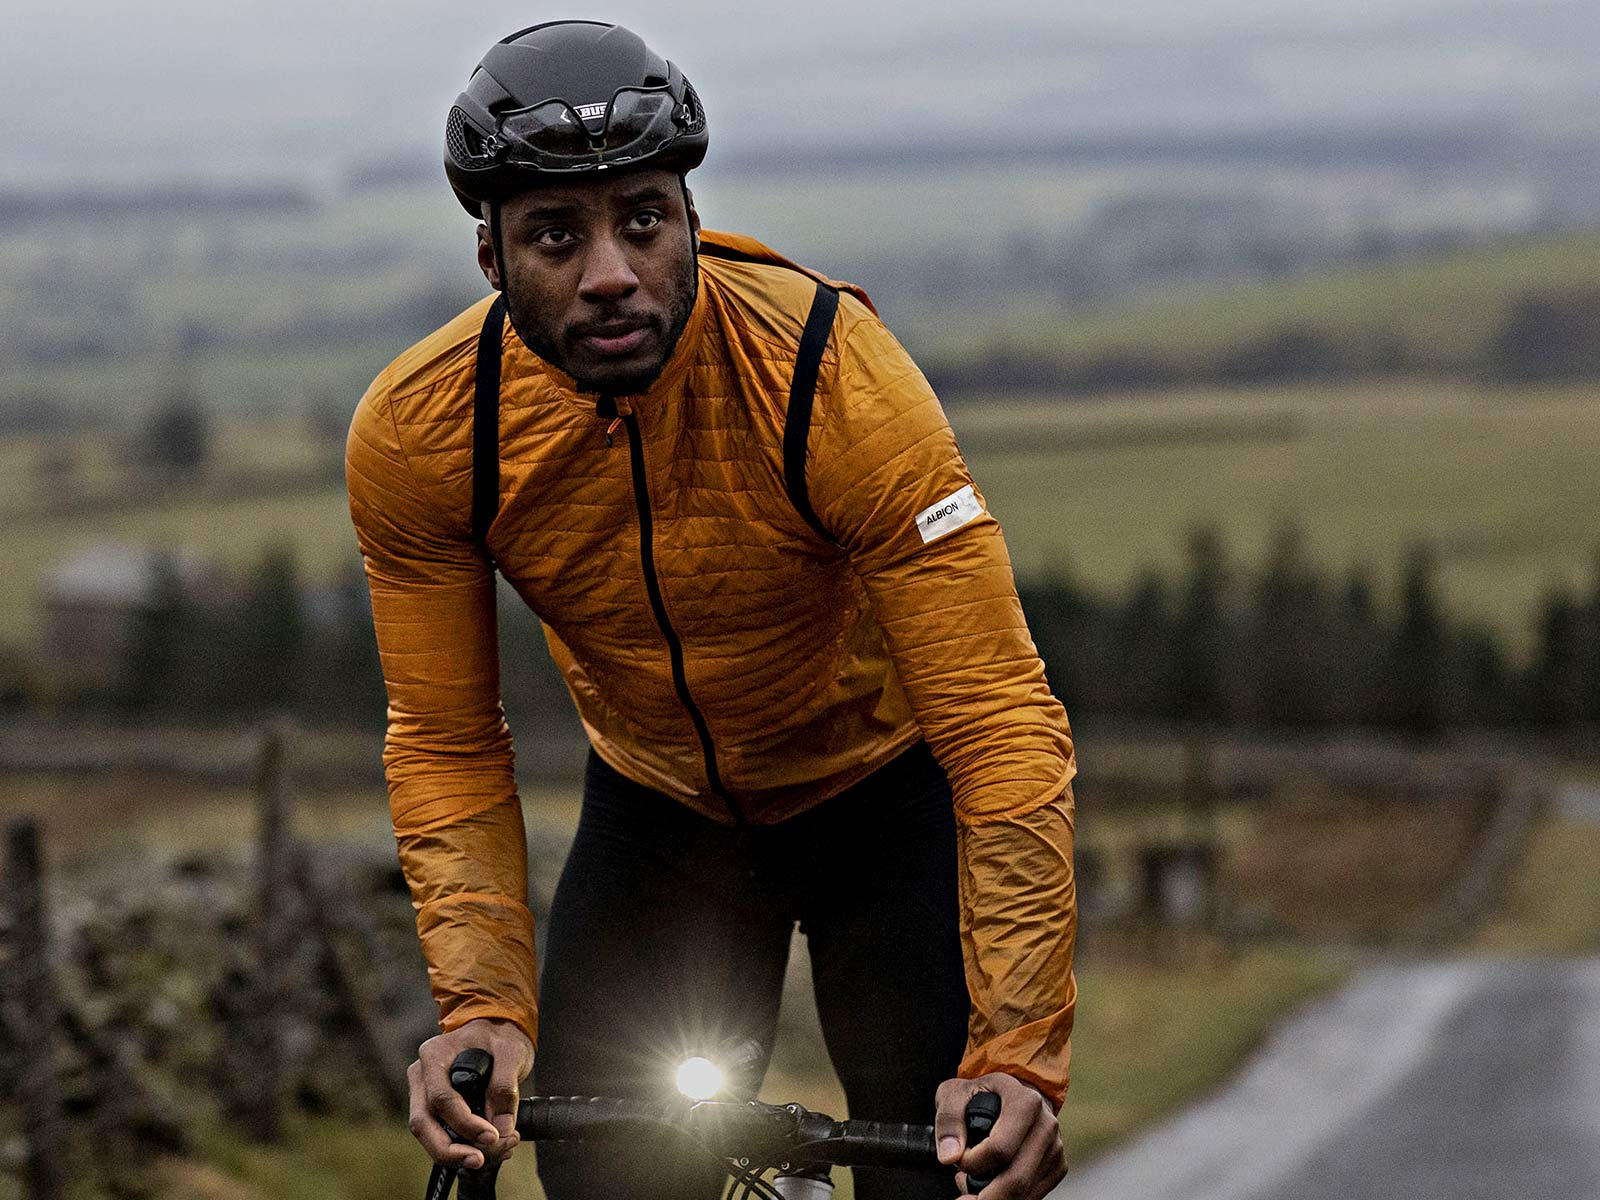 Albion Ultralight Insulated Jacket, ultra lightweight packable breathable eco cycling jacket and backpack,front